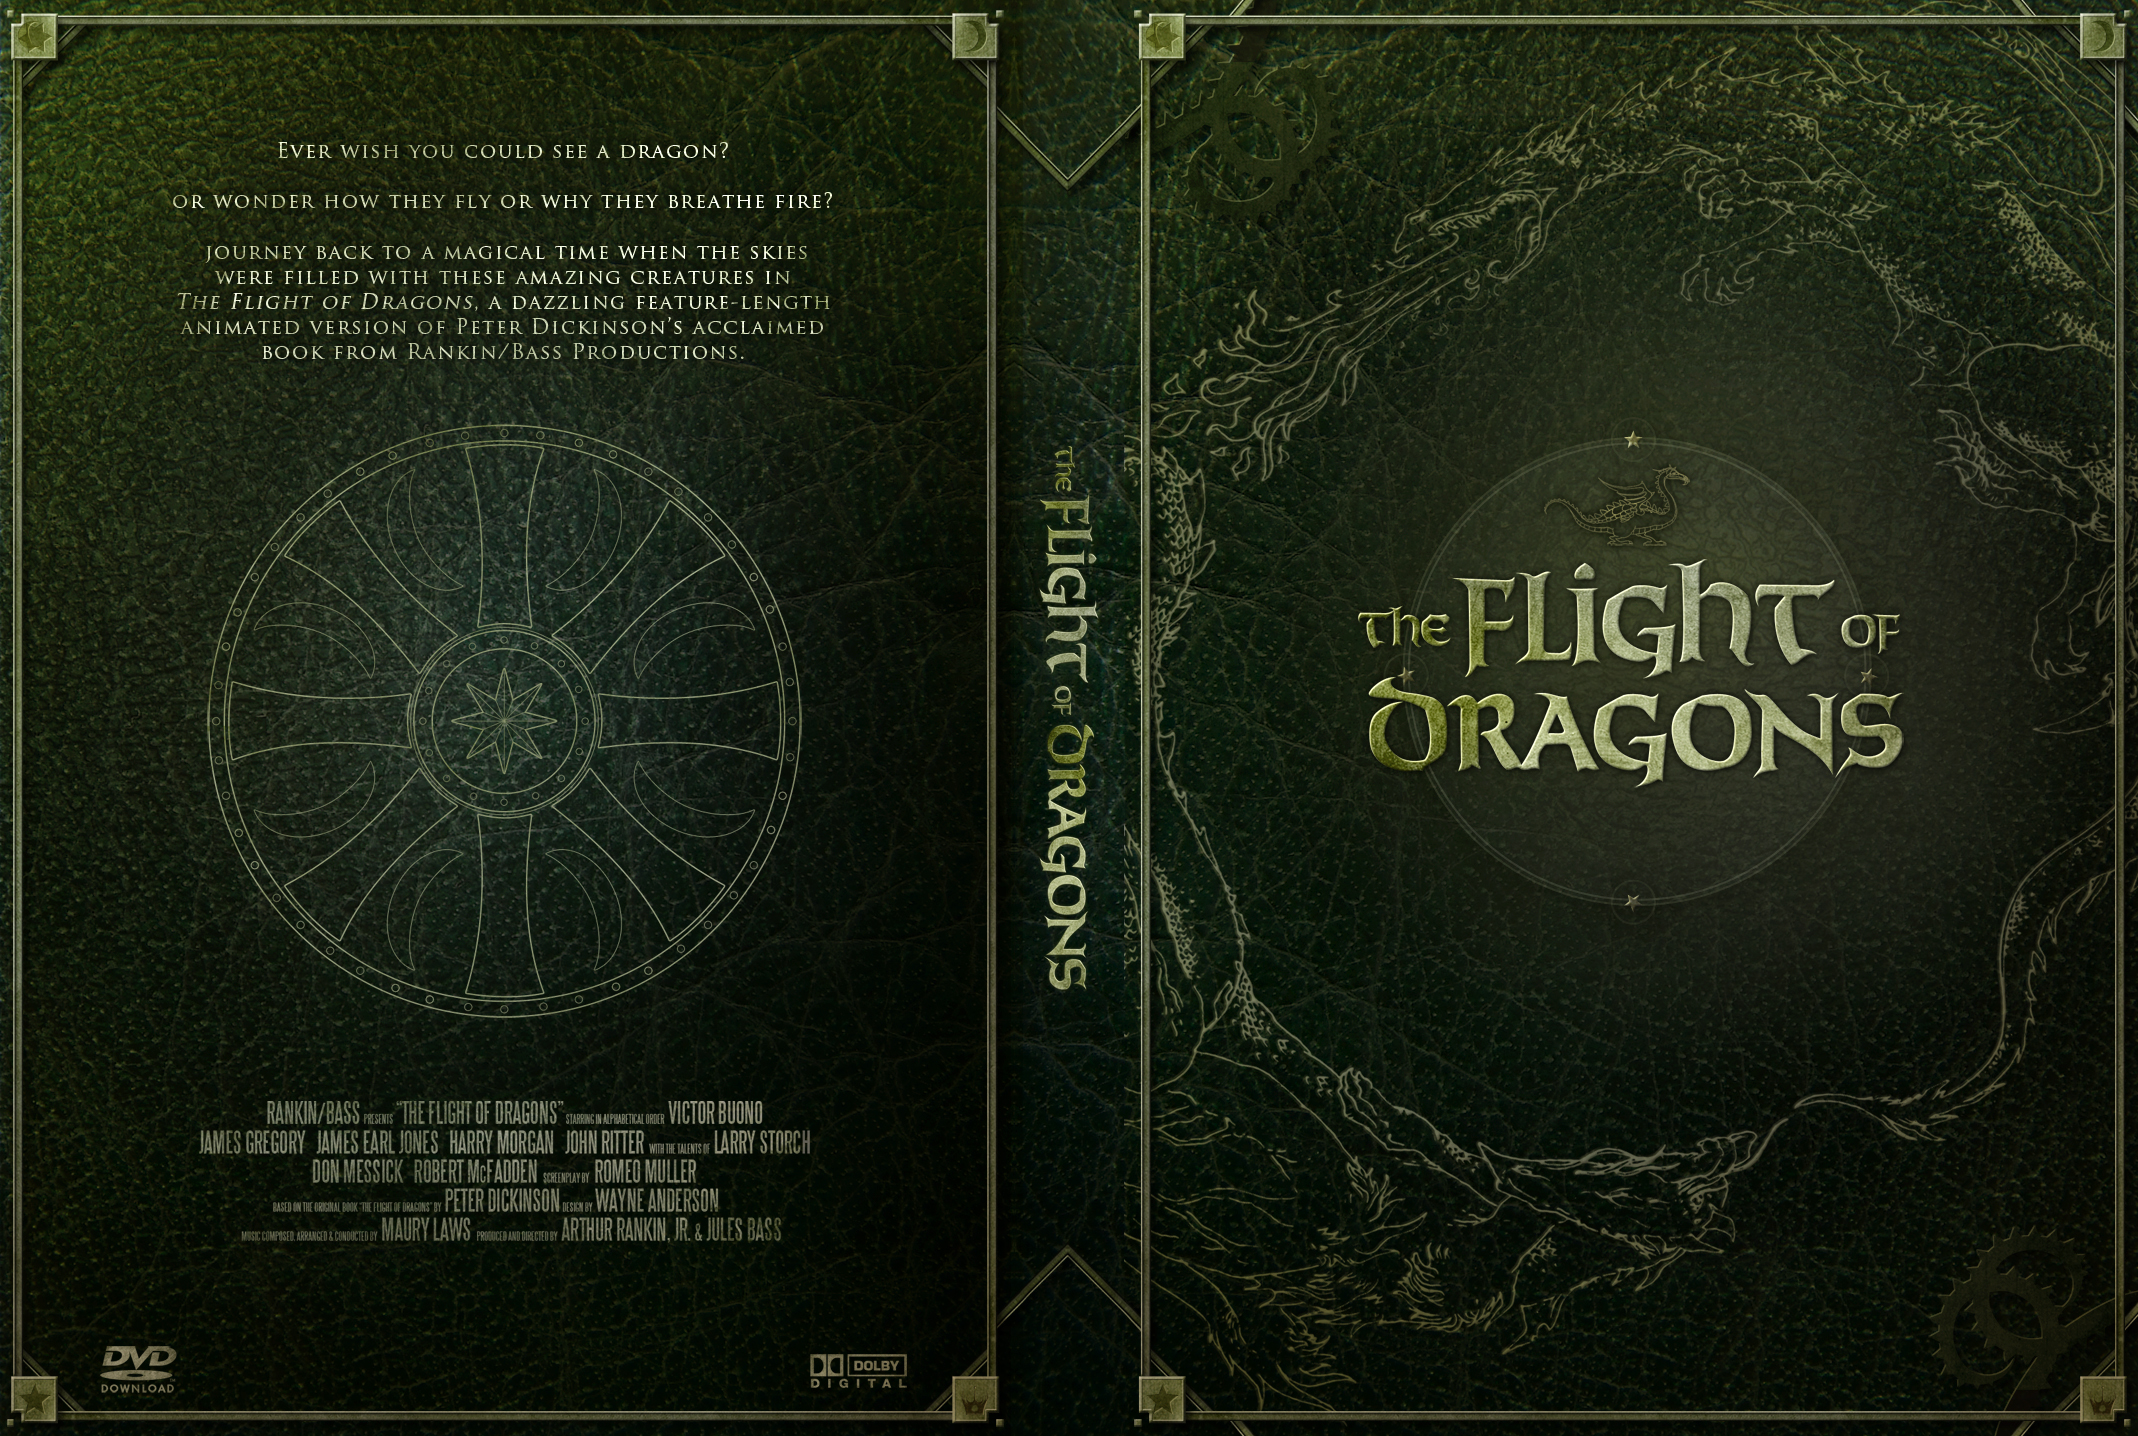 DRAGONS DVD COVER 72p